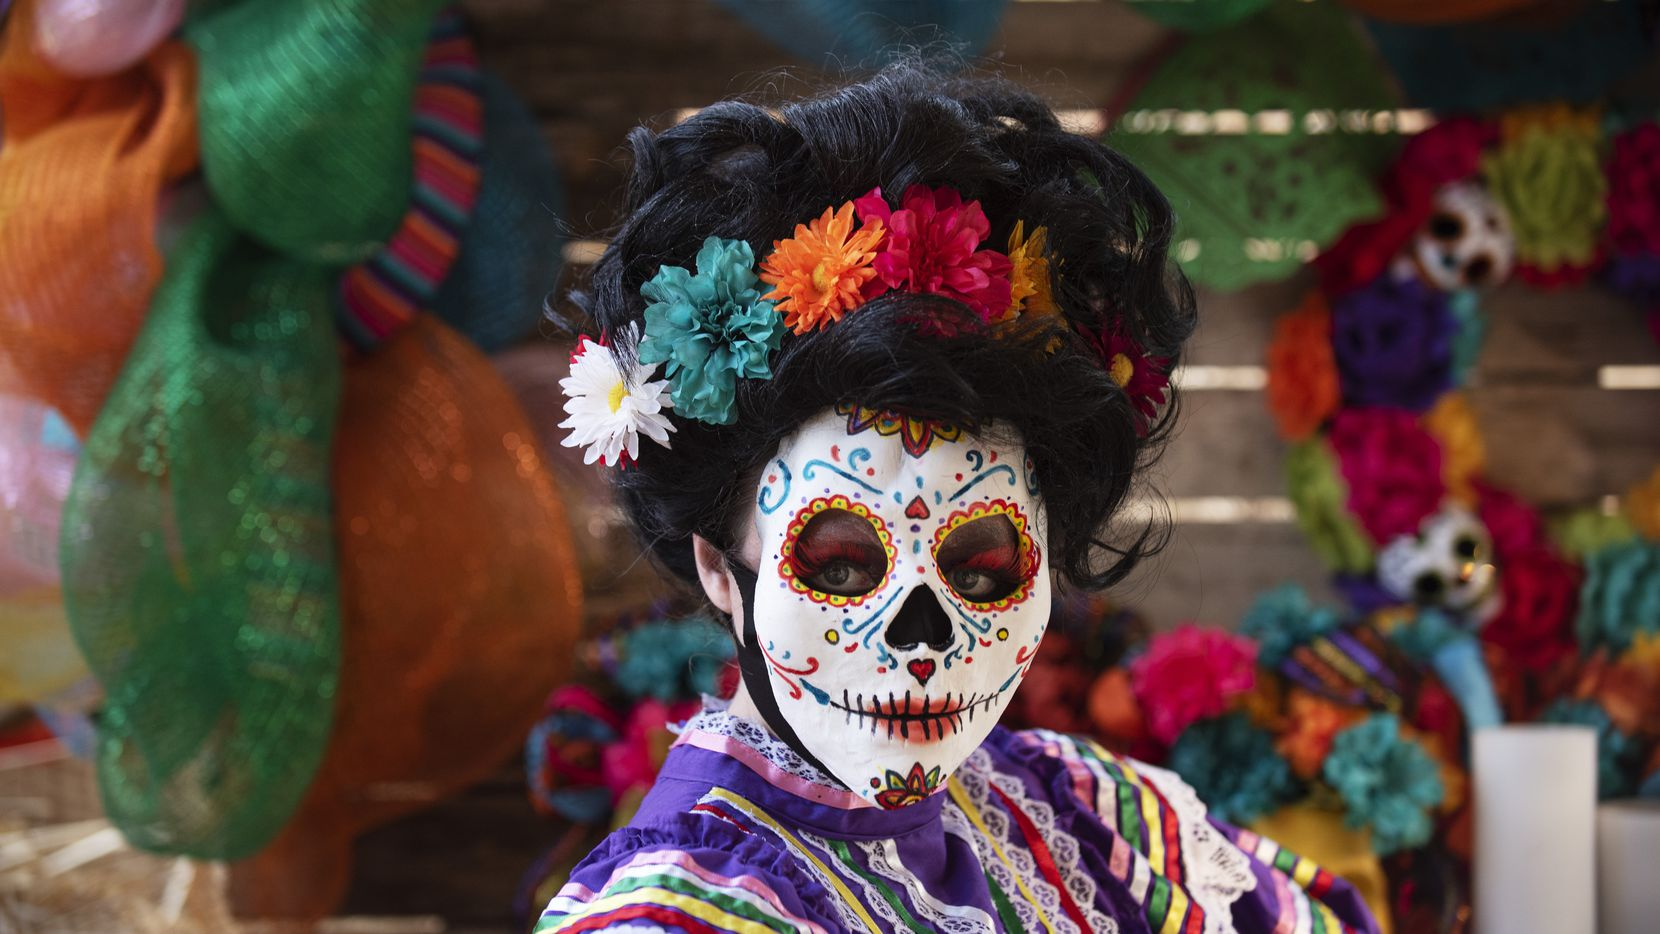 A Dia de los Muertos character named Valentina poses before meeting families at the Mystic Acres Trick or Treat Trail part of the Six Flags Hallowfest in Arlington, Saturday, Oct. 03, 2020. The city of Garland will hold an event for families looking for an alternative to in-person celebrations.